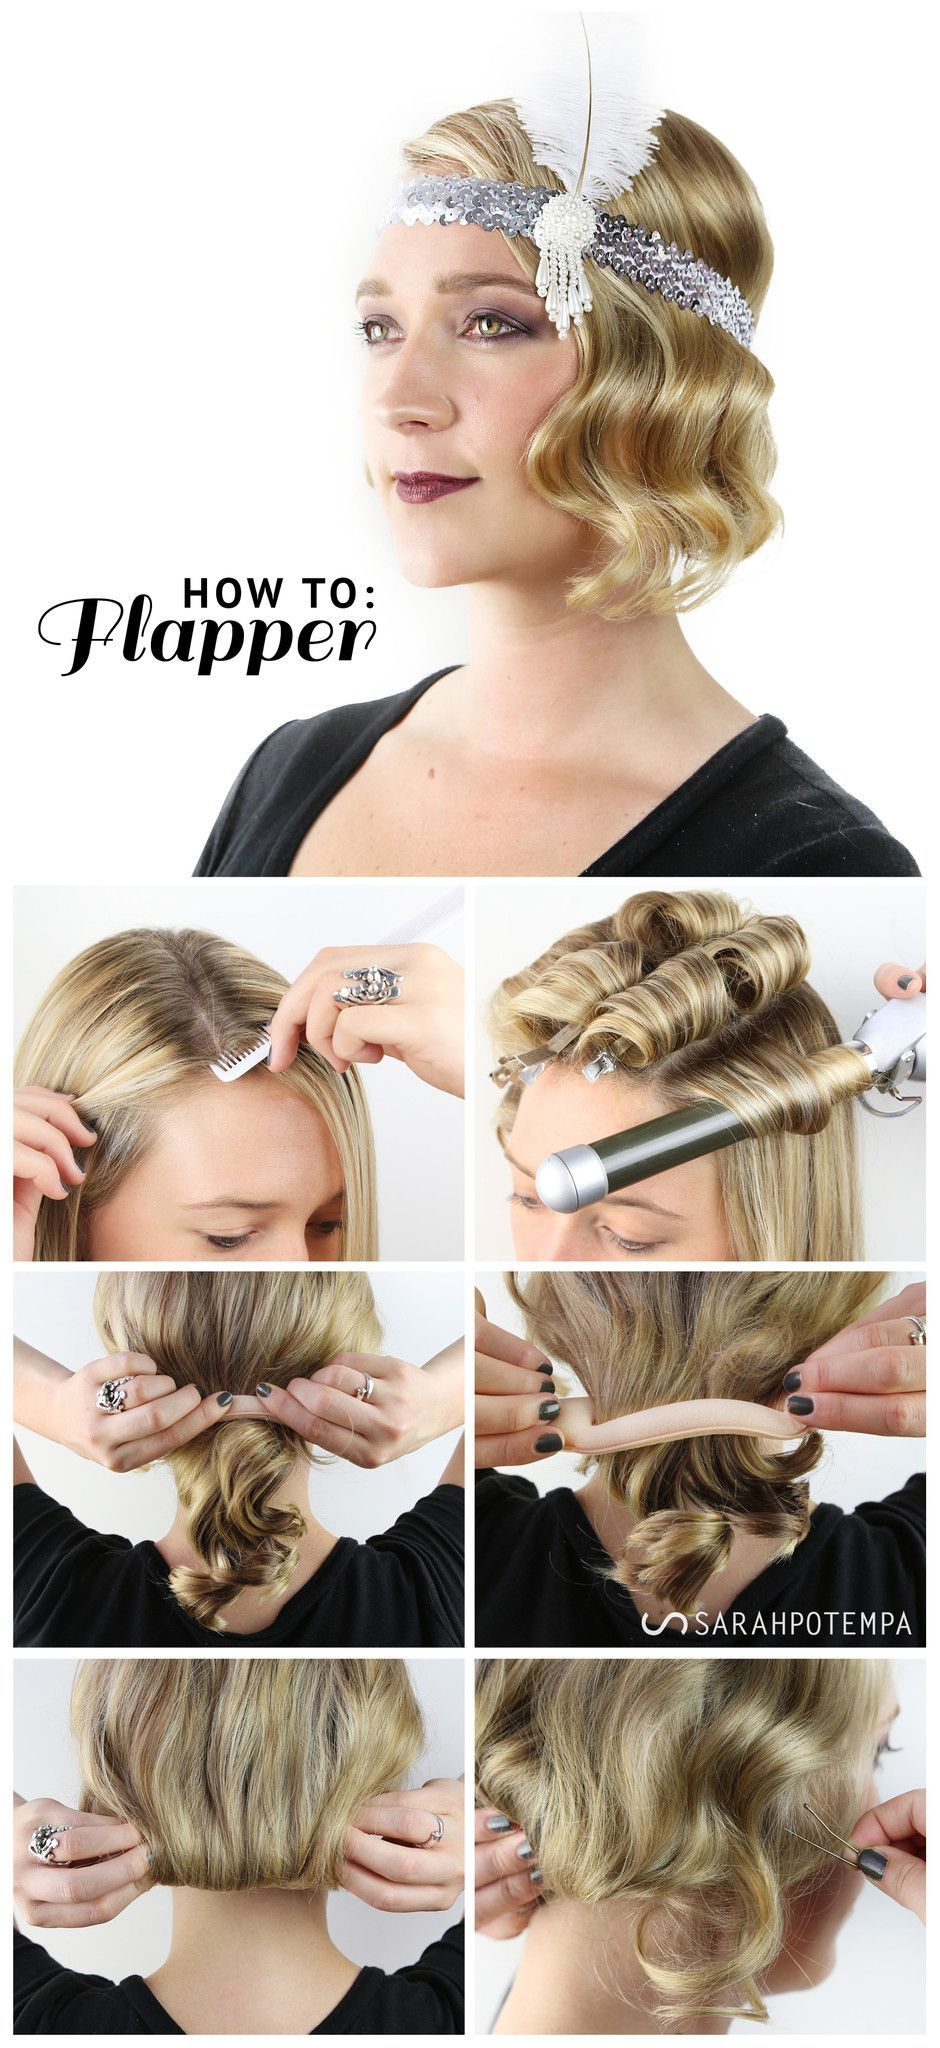 55 Fresh How To Do 1920s Hairstyles For Short Hair Check More At Https Shorthairstyles Me 99 How To Do 1920s Hairstyles Fo Gatsby Hair Flapper Hair 20s Hair